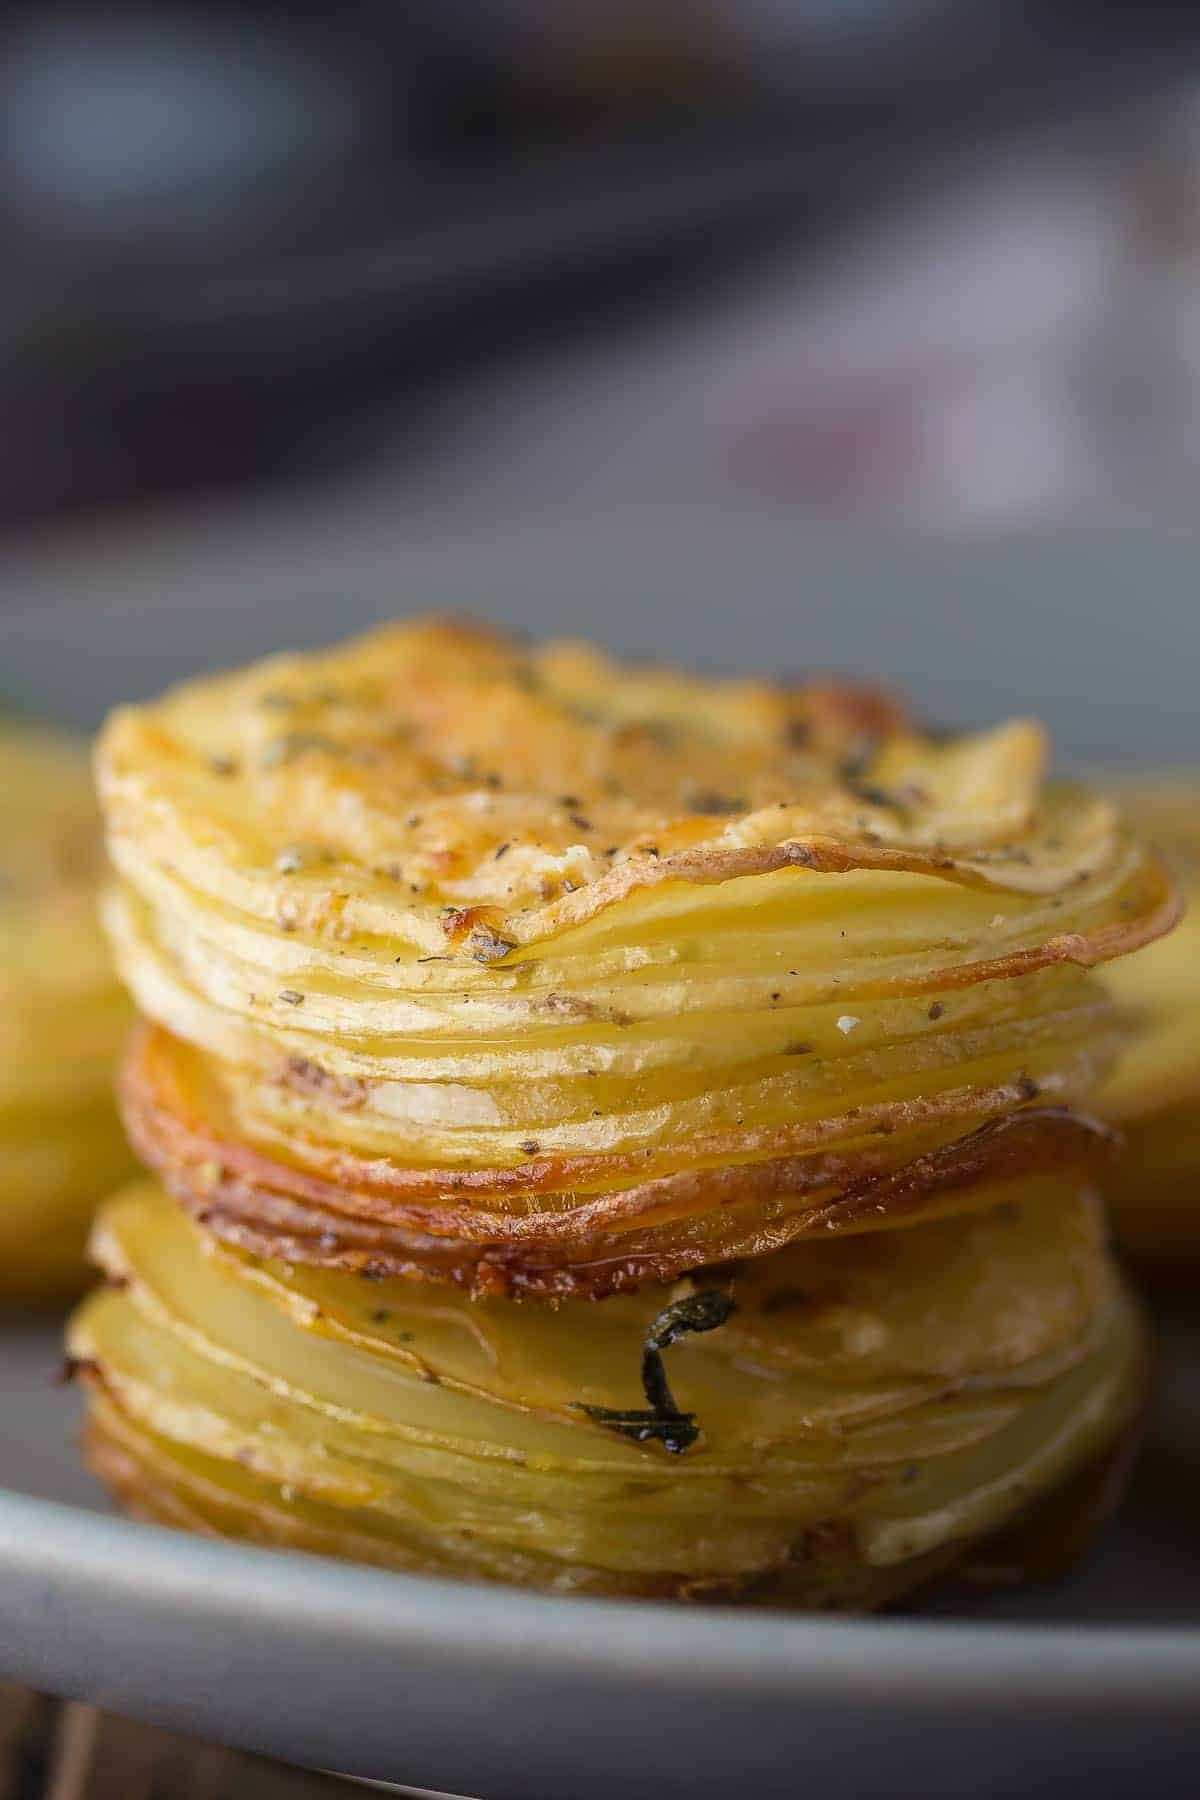 side angle and close up view of potato stack on plate. Christmas dinner sides